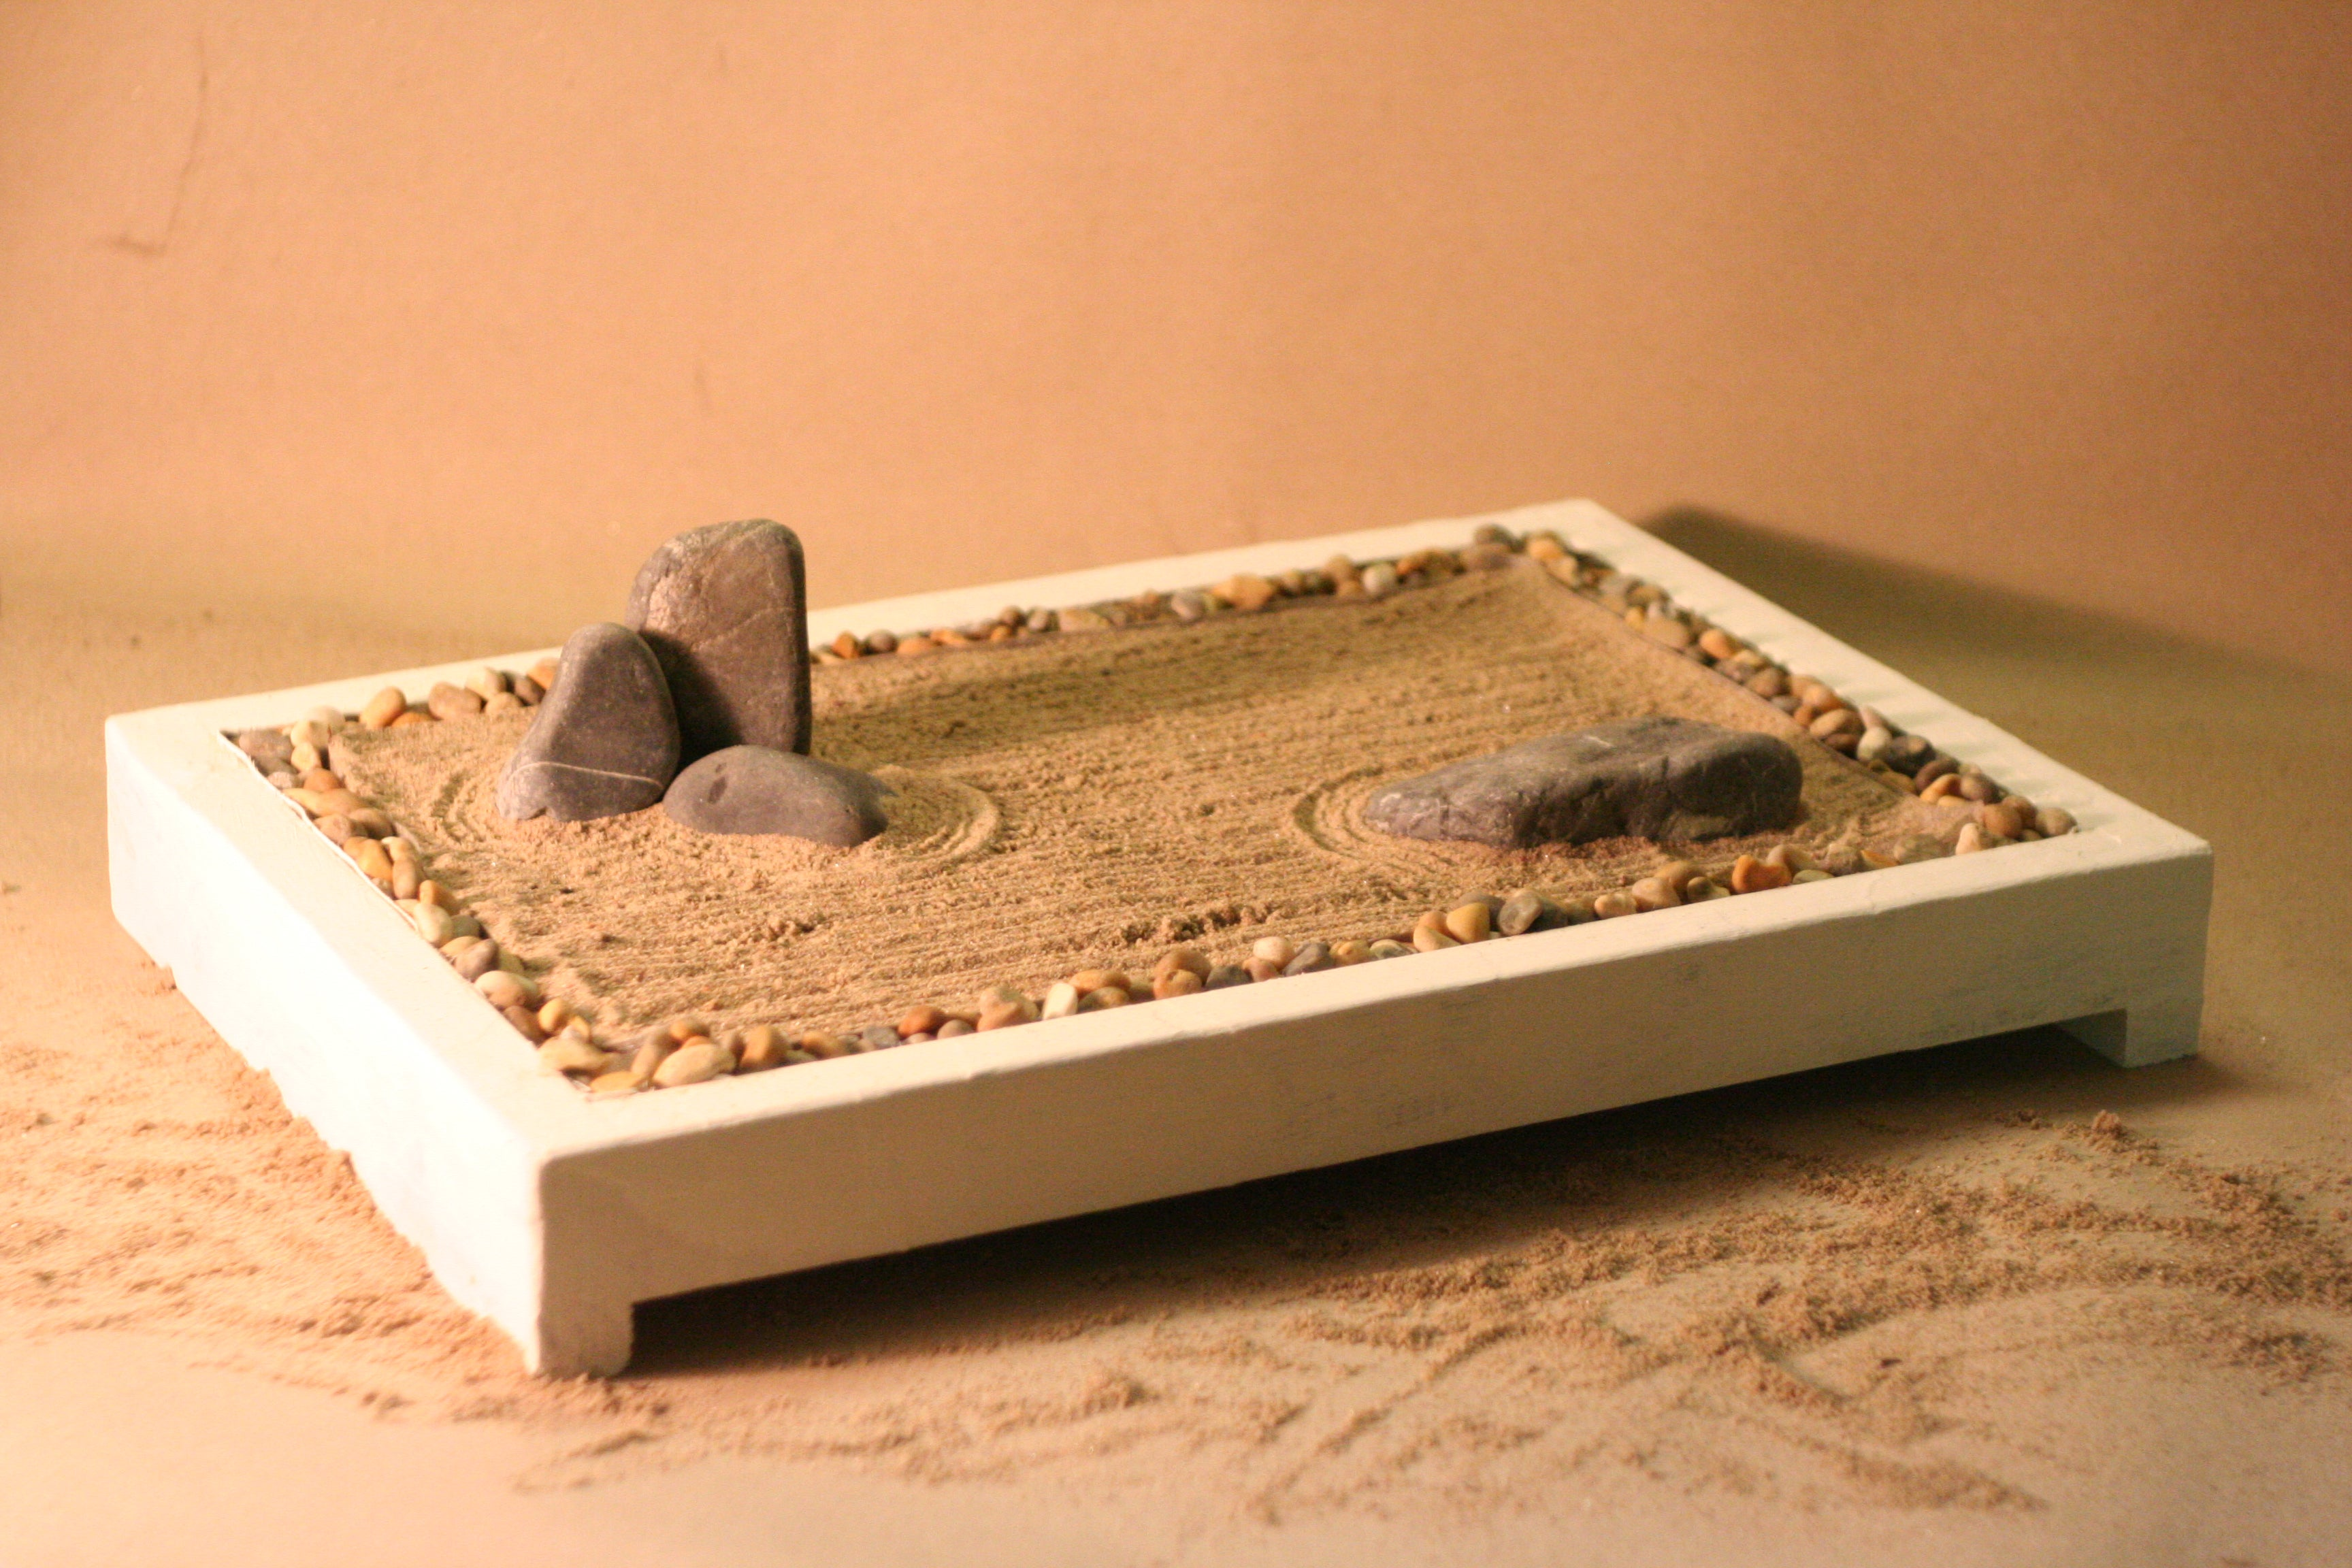 How To Build Your Own Desktop Zen Garden 5 Steps With Pictures Instructables